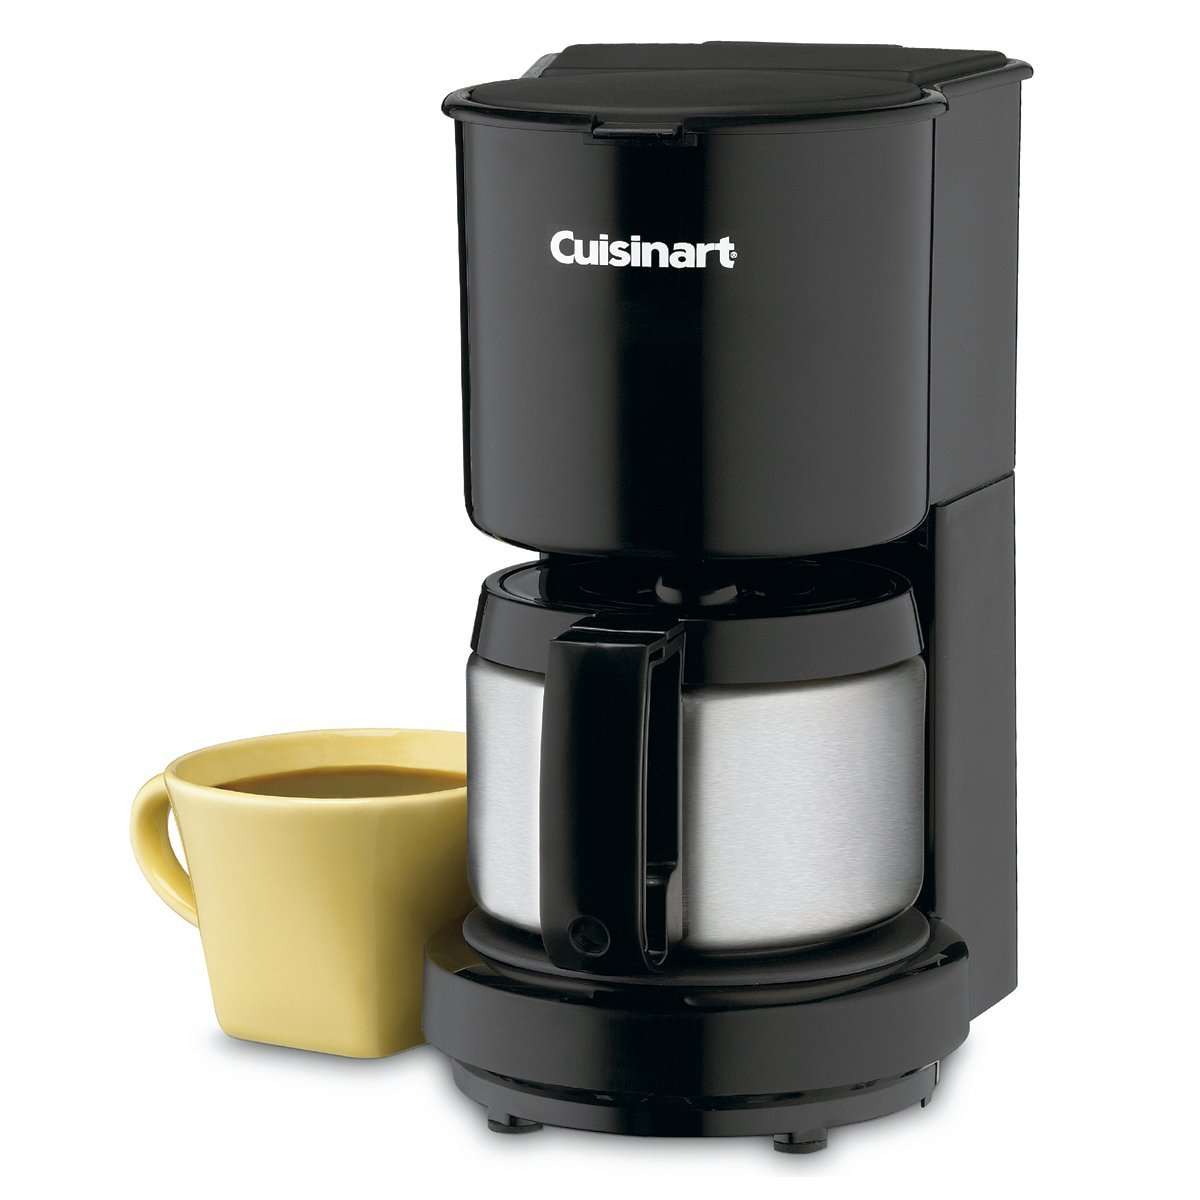 Certified Refurbished Cuisinart 4-Cup Coffeemaker with Stainless Carafe (DCC-450BK)